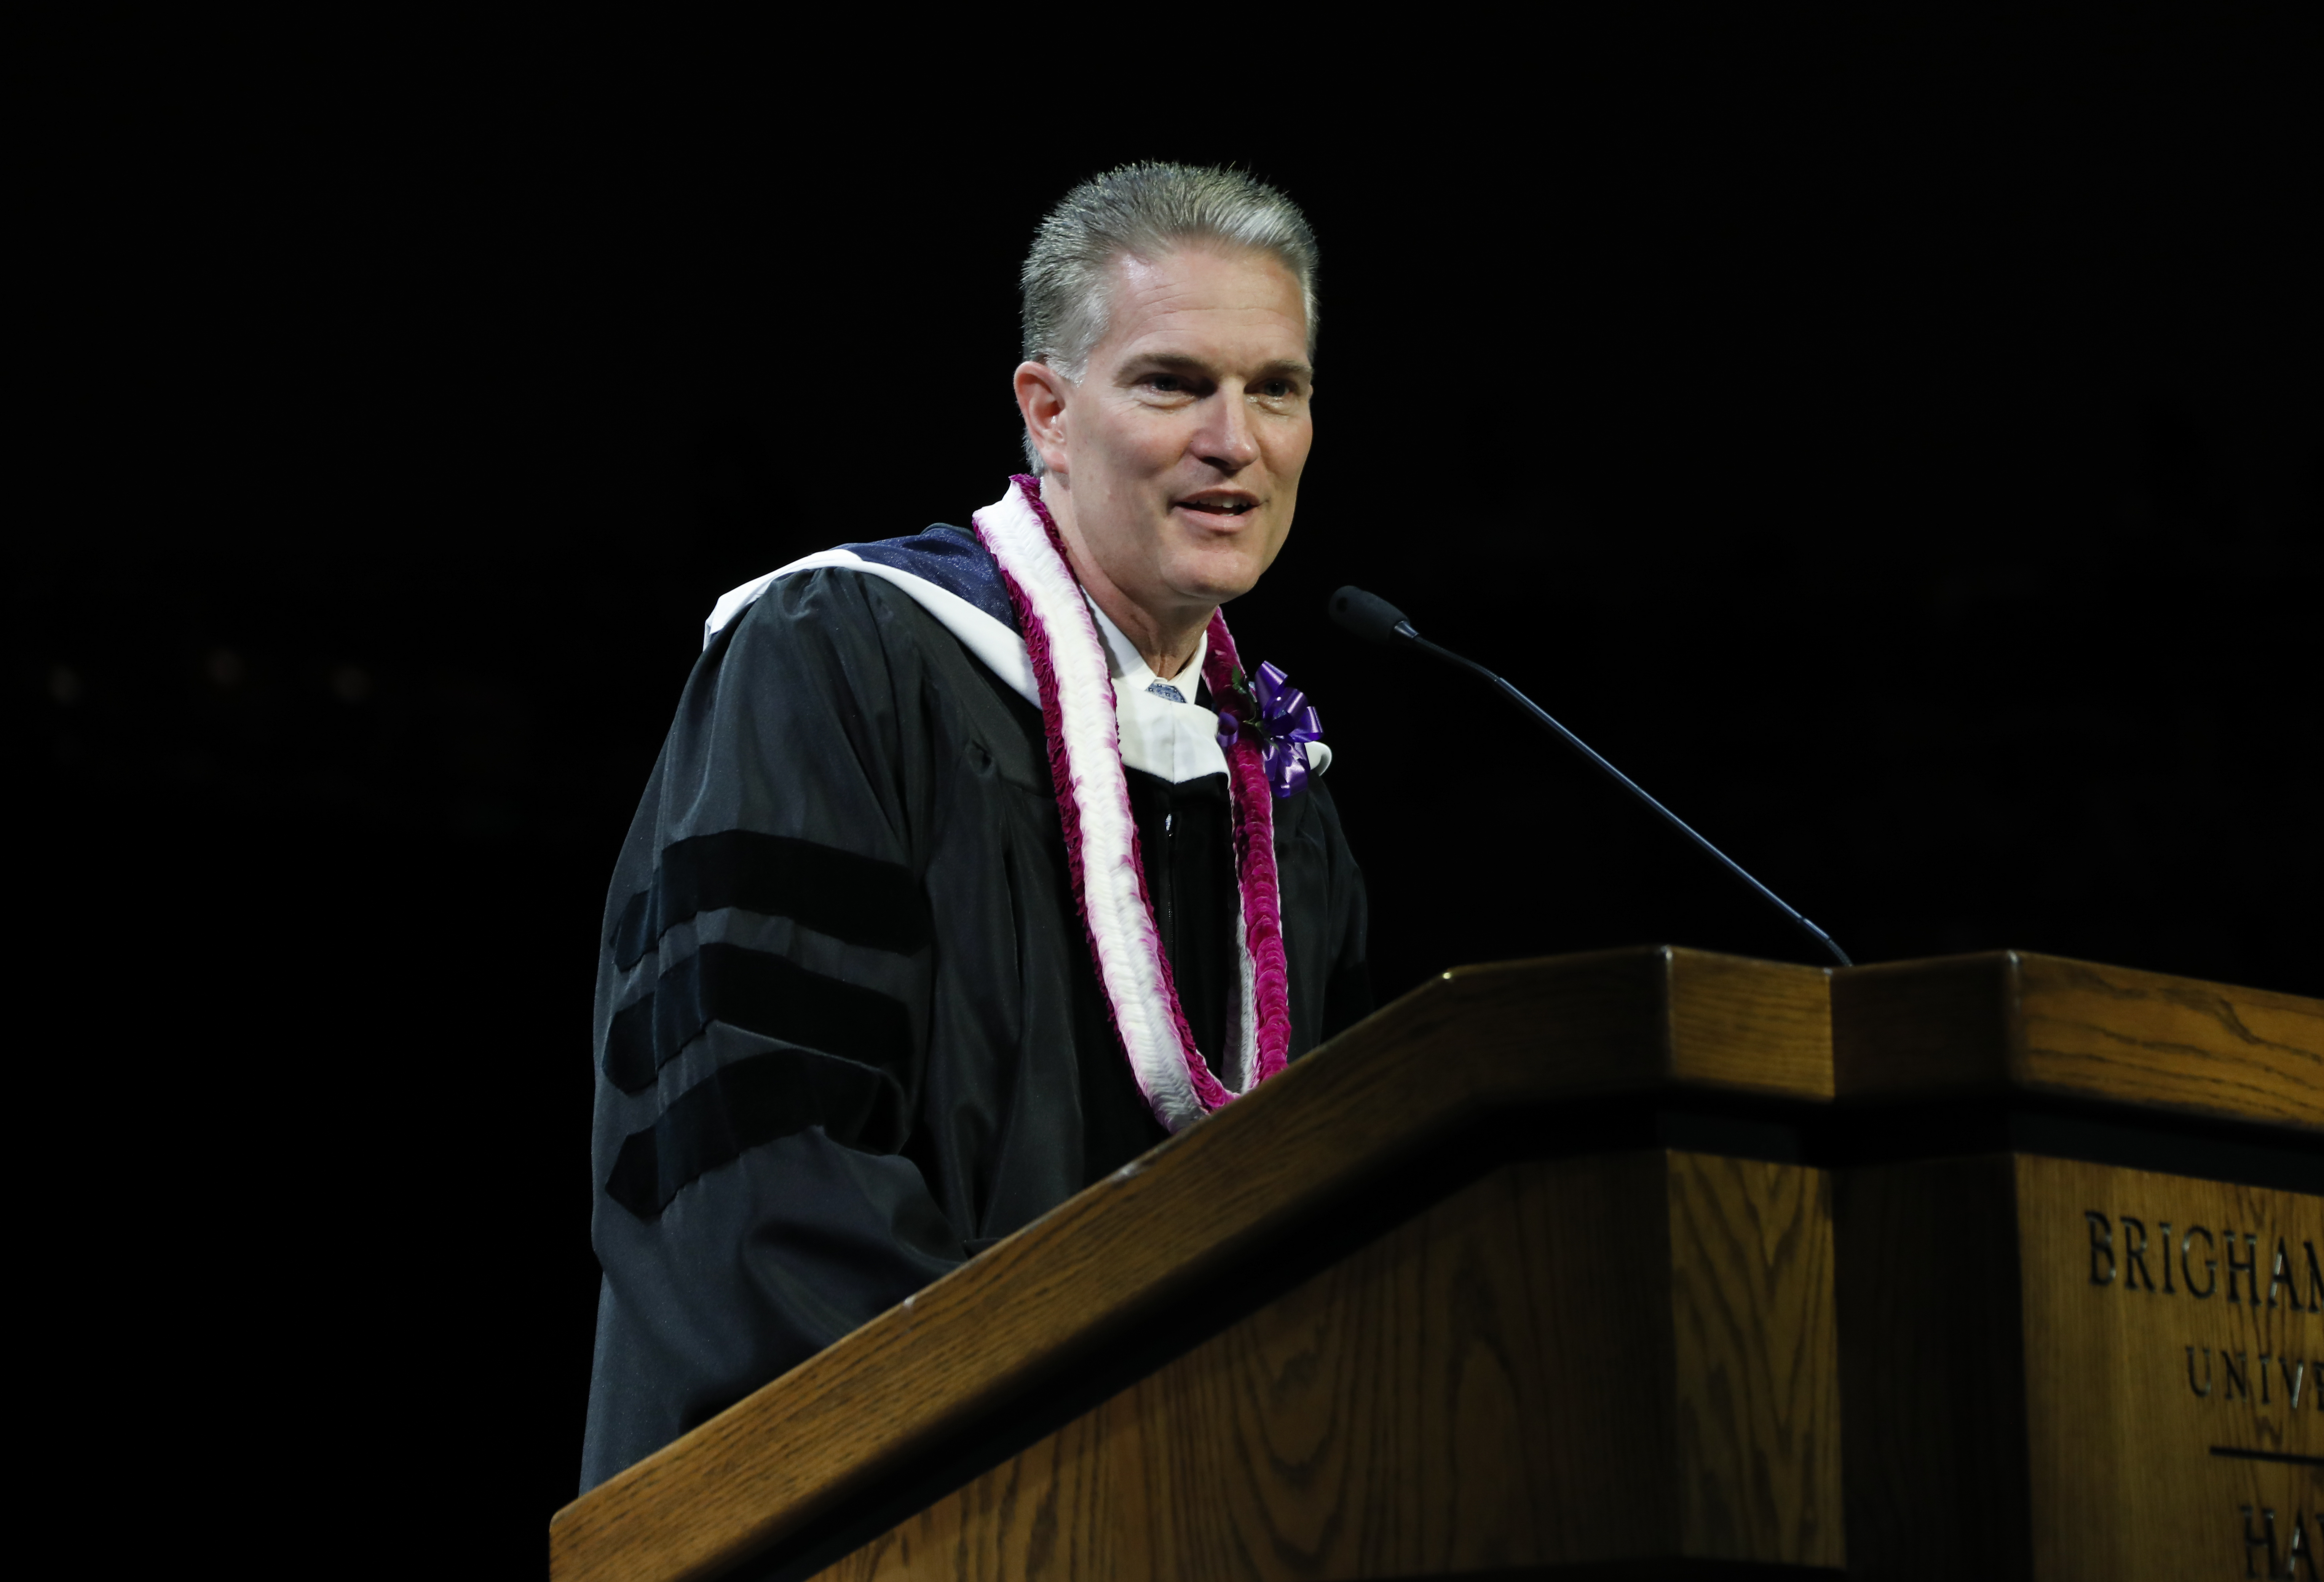 Elder Brian K. Taylor, a General Authority Seventy, speaks to graduating students at the Brigham Young University-Hawaii Commencement on June 29, 2019.